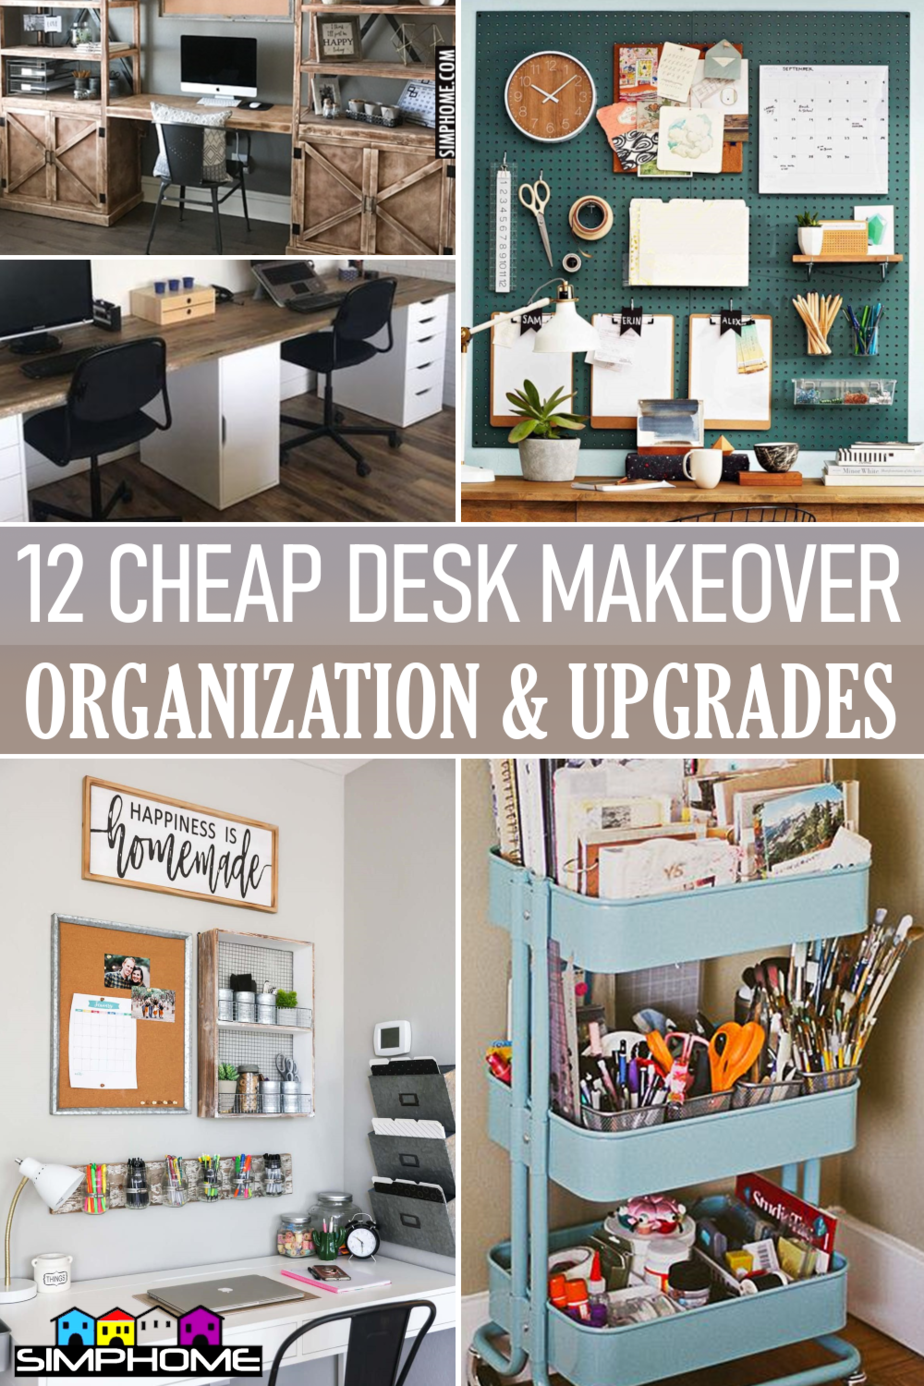 12 Cheap Desk organization ideas via Simphome.comFeatured